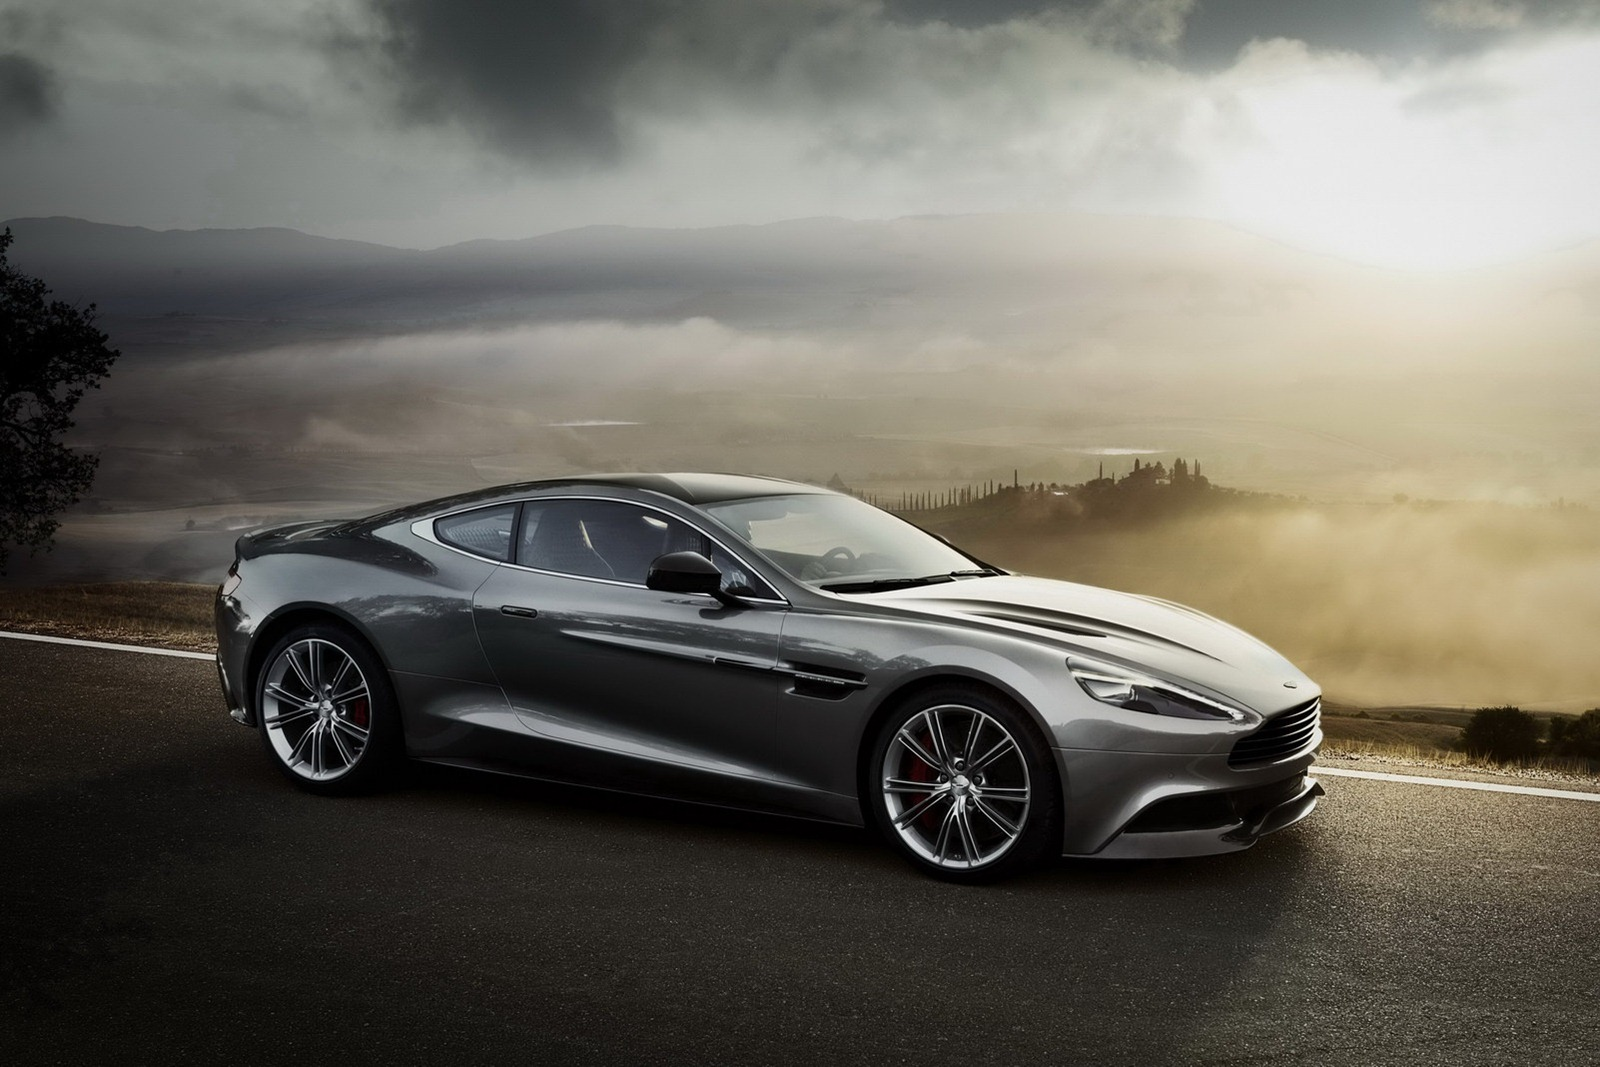 2013 aston martin vanquish grey lifestyle. Cars Review. Best American Auto & Cars Review